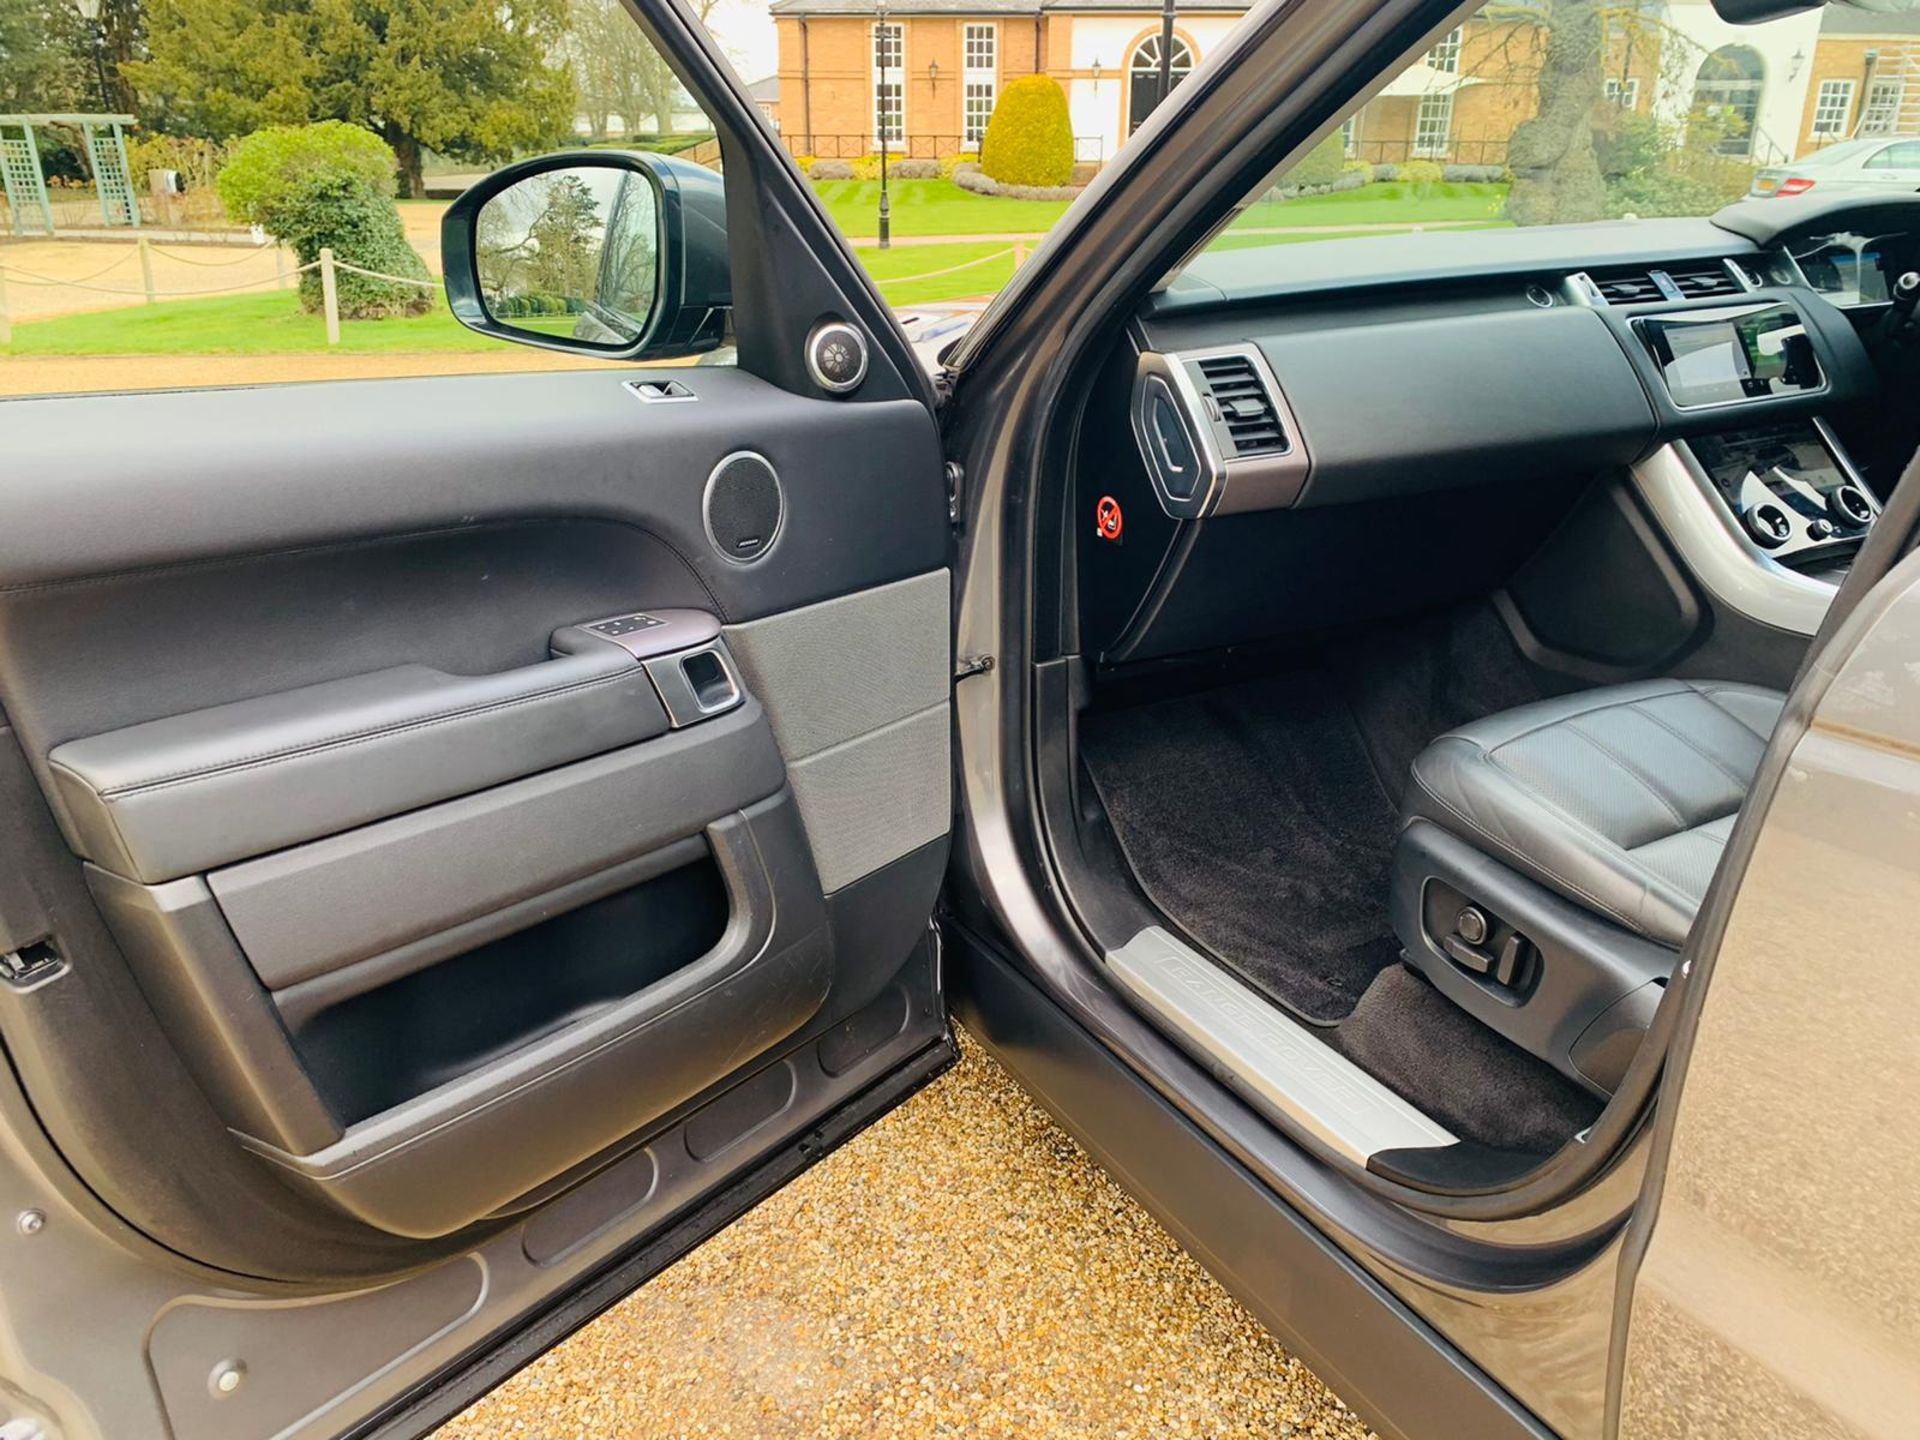 (RESERVE MET) Range Rover Sport 3.0 SDV6 HSE Auto - 2019 - 1 Keeper From New - Virtual Cockpit - - Image 38 of 42